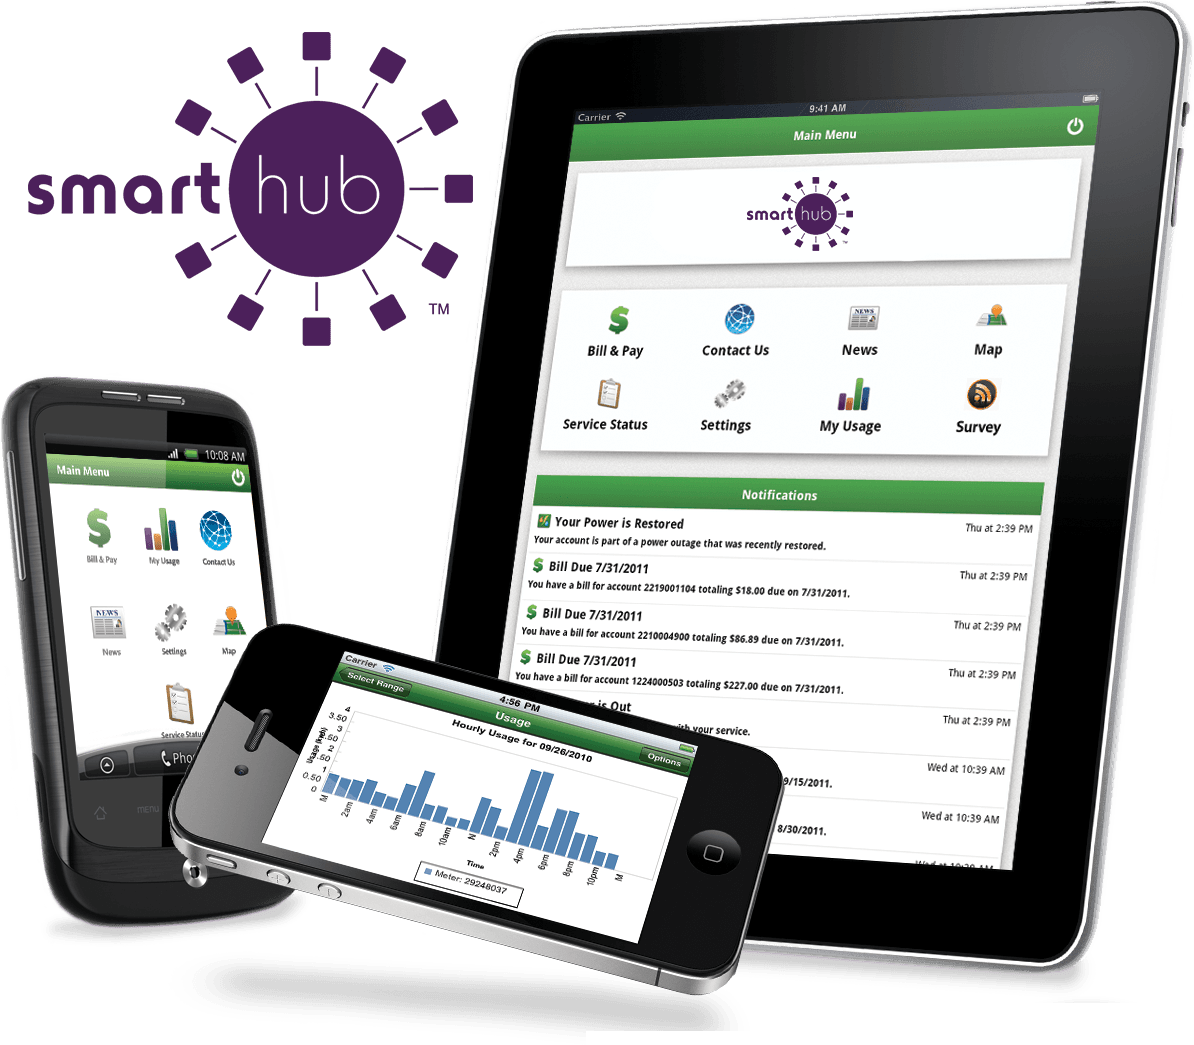 Devices on the SmartHub app